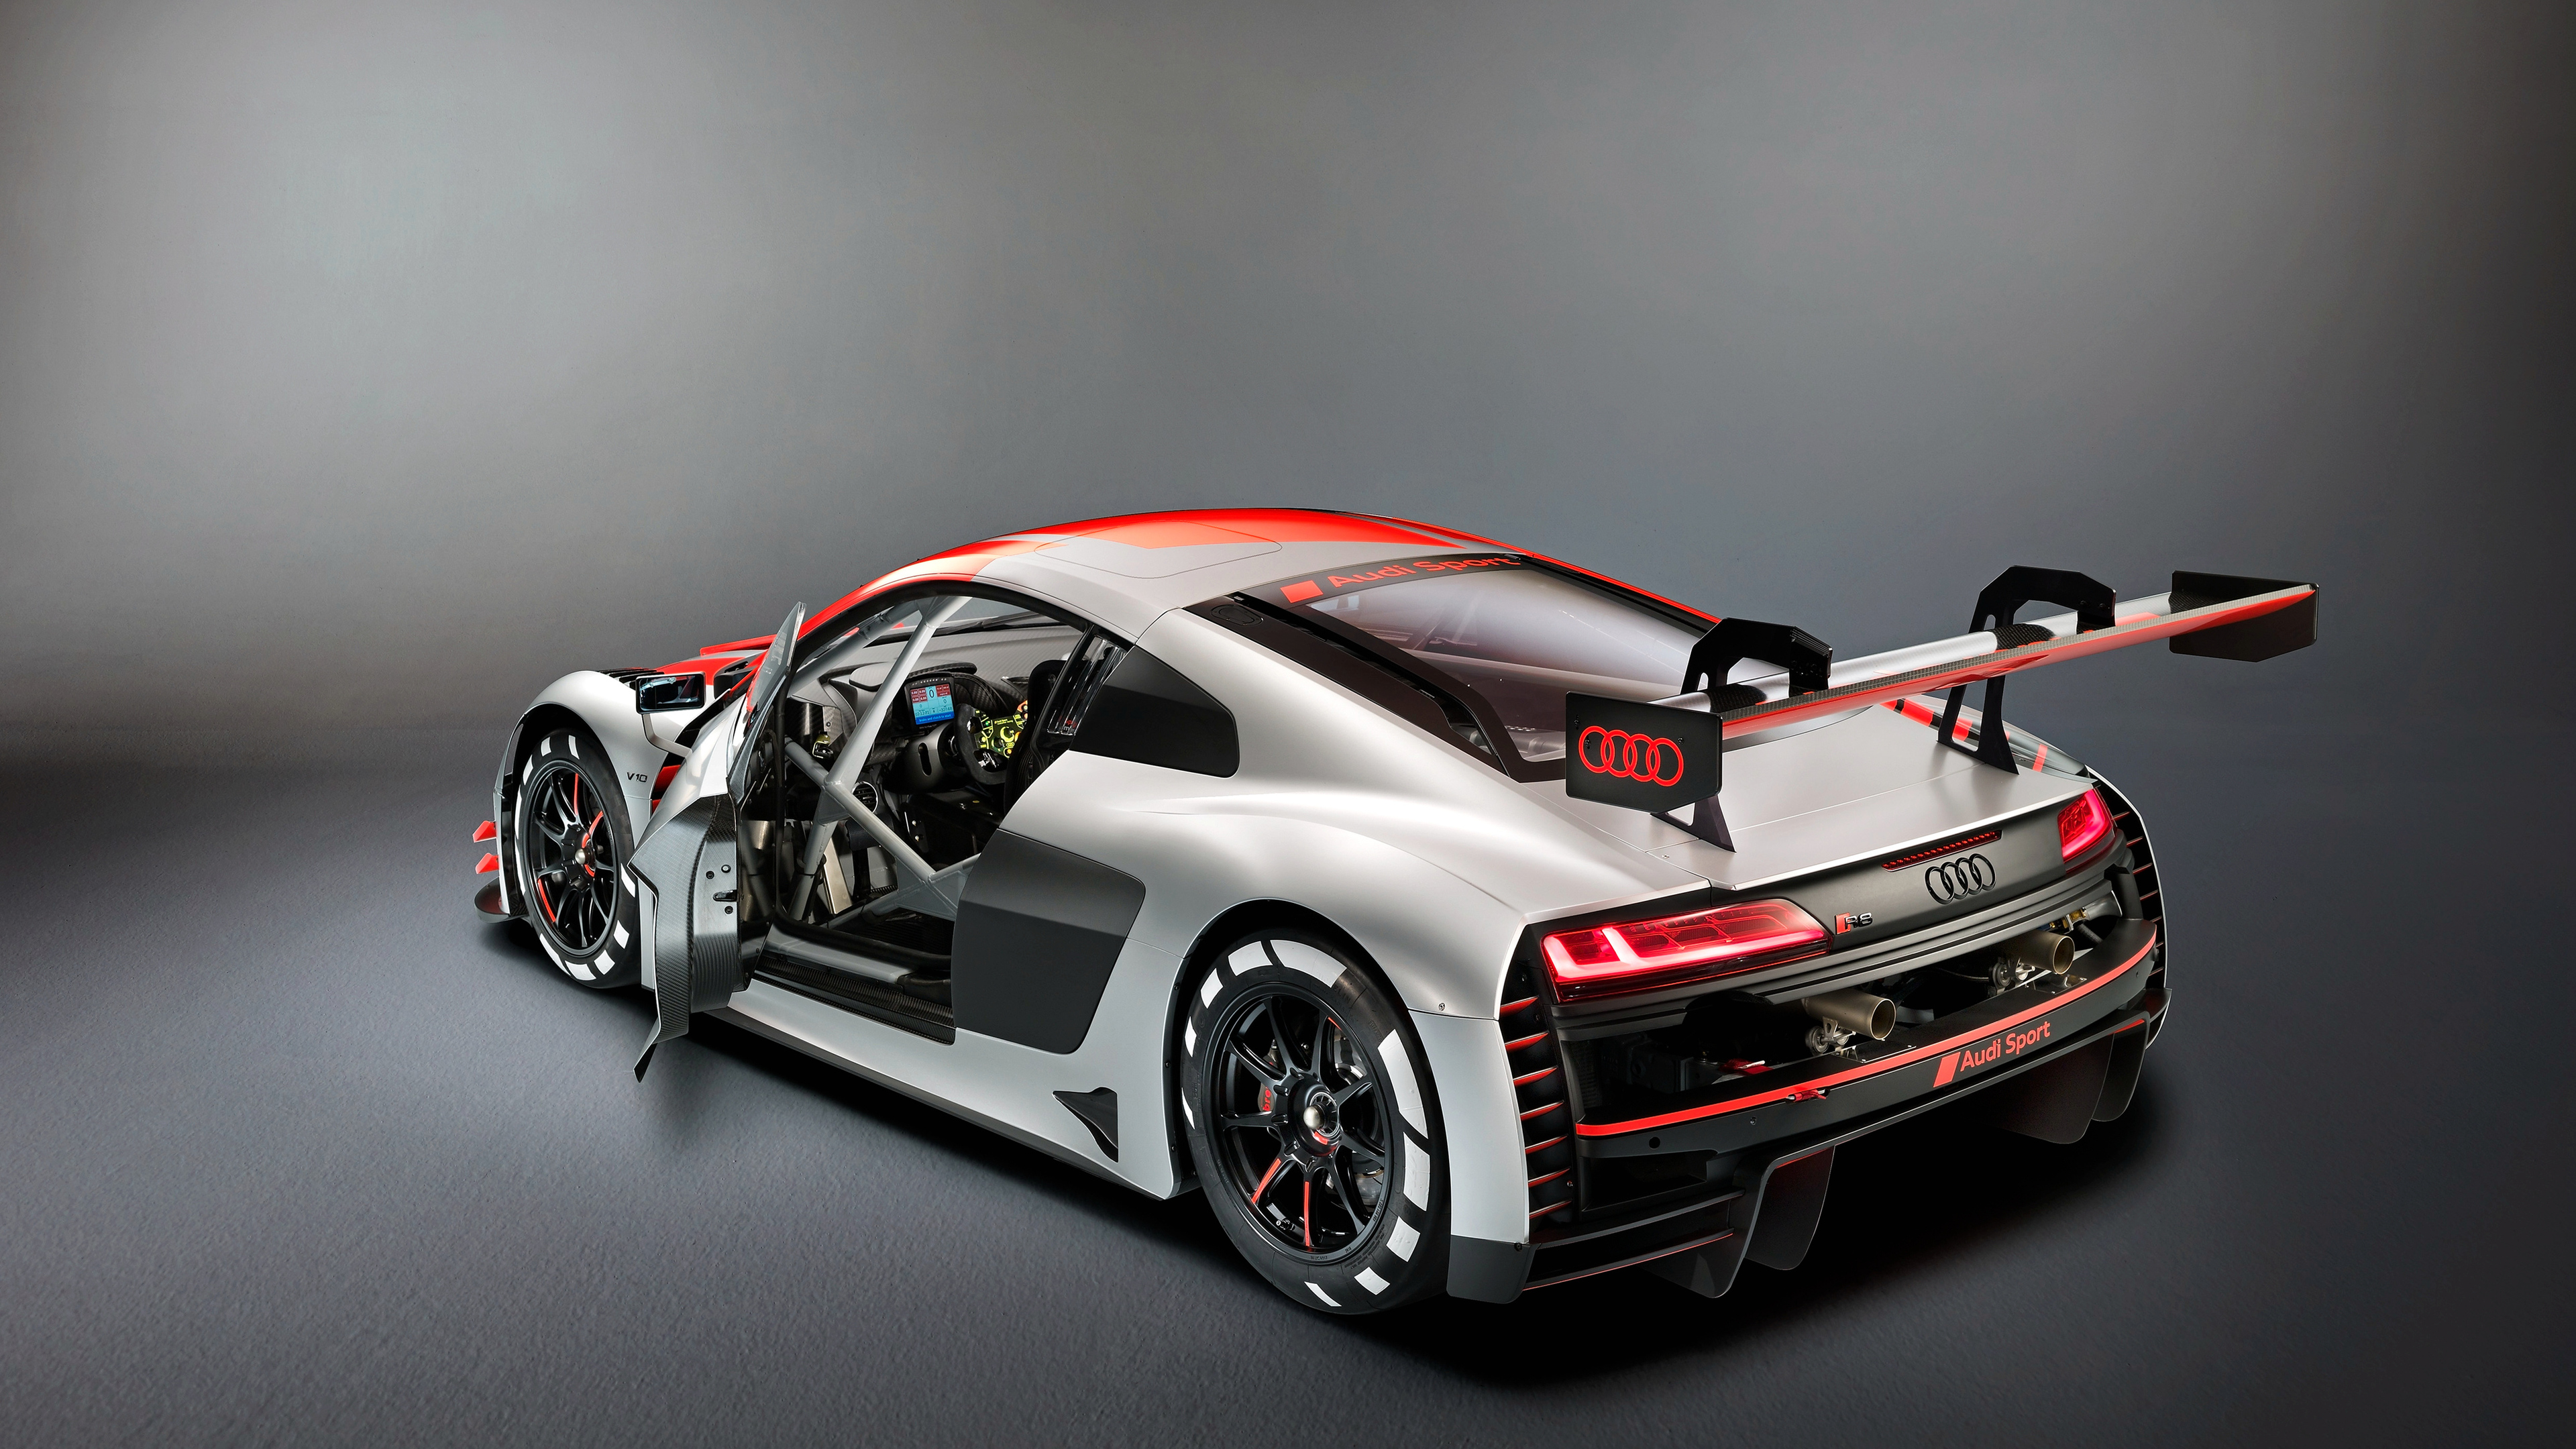 2019 audi r8 lms rear view 1539792904 - 2019 Audi R8 LMS Rear View - hd-wallpapers, cars wallpapers, audi wallpapers, audi r8 wallpapers, audi r8 lms wallpapers, 4k-wallpapers, 2019 cars wallpapers